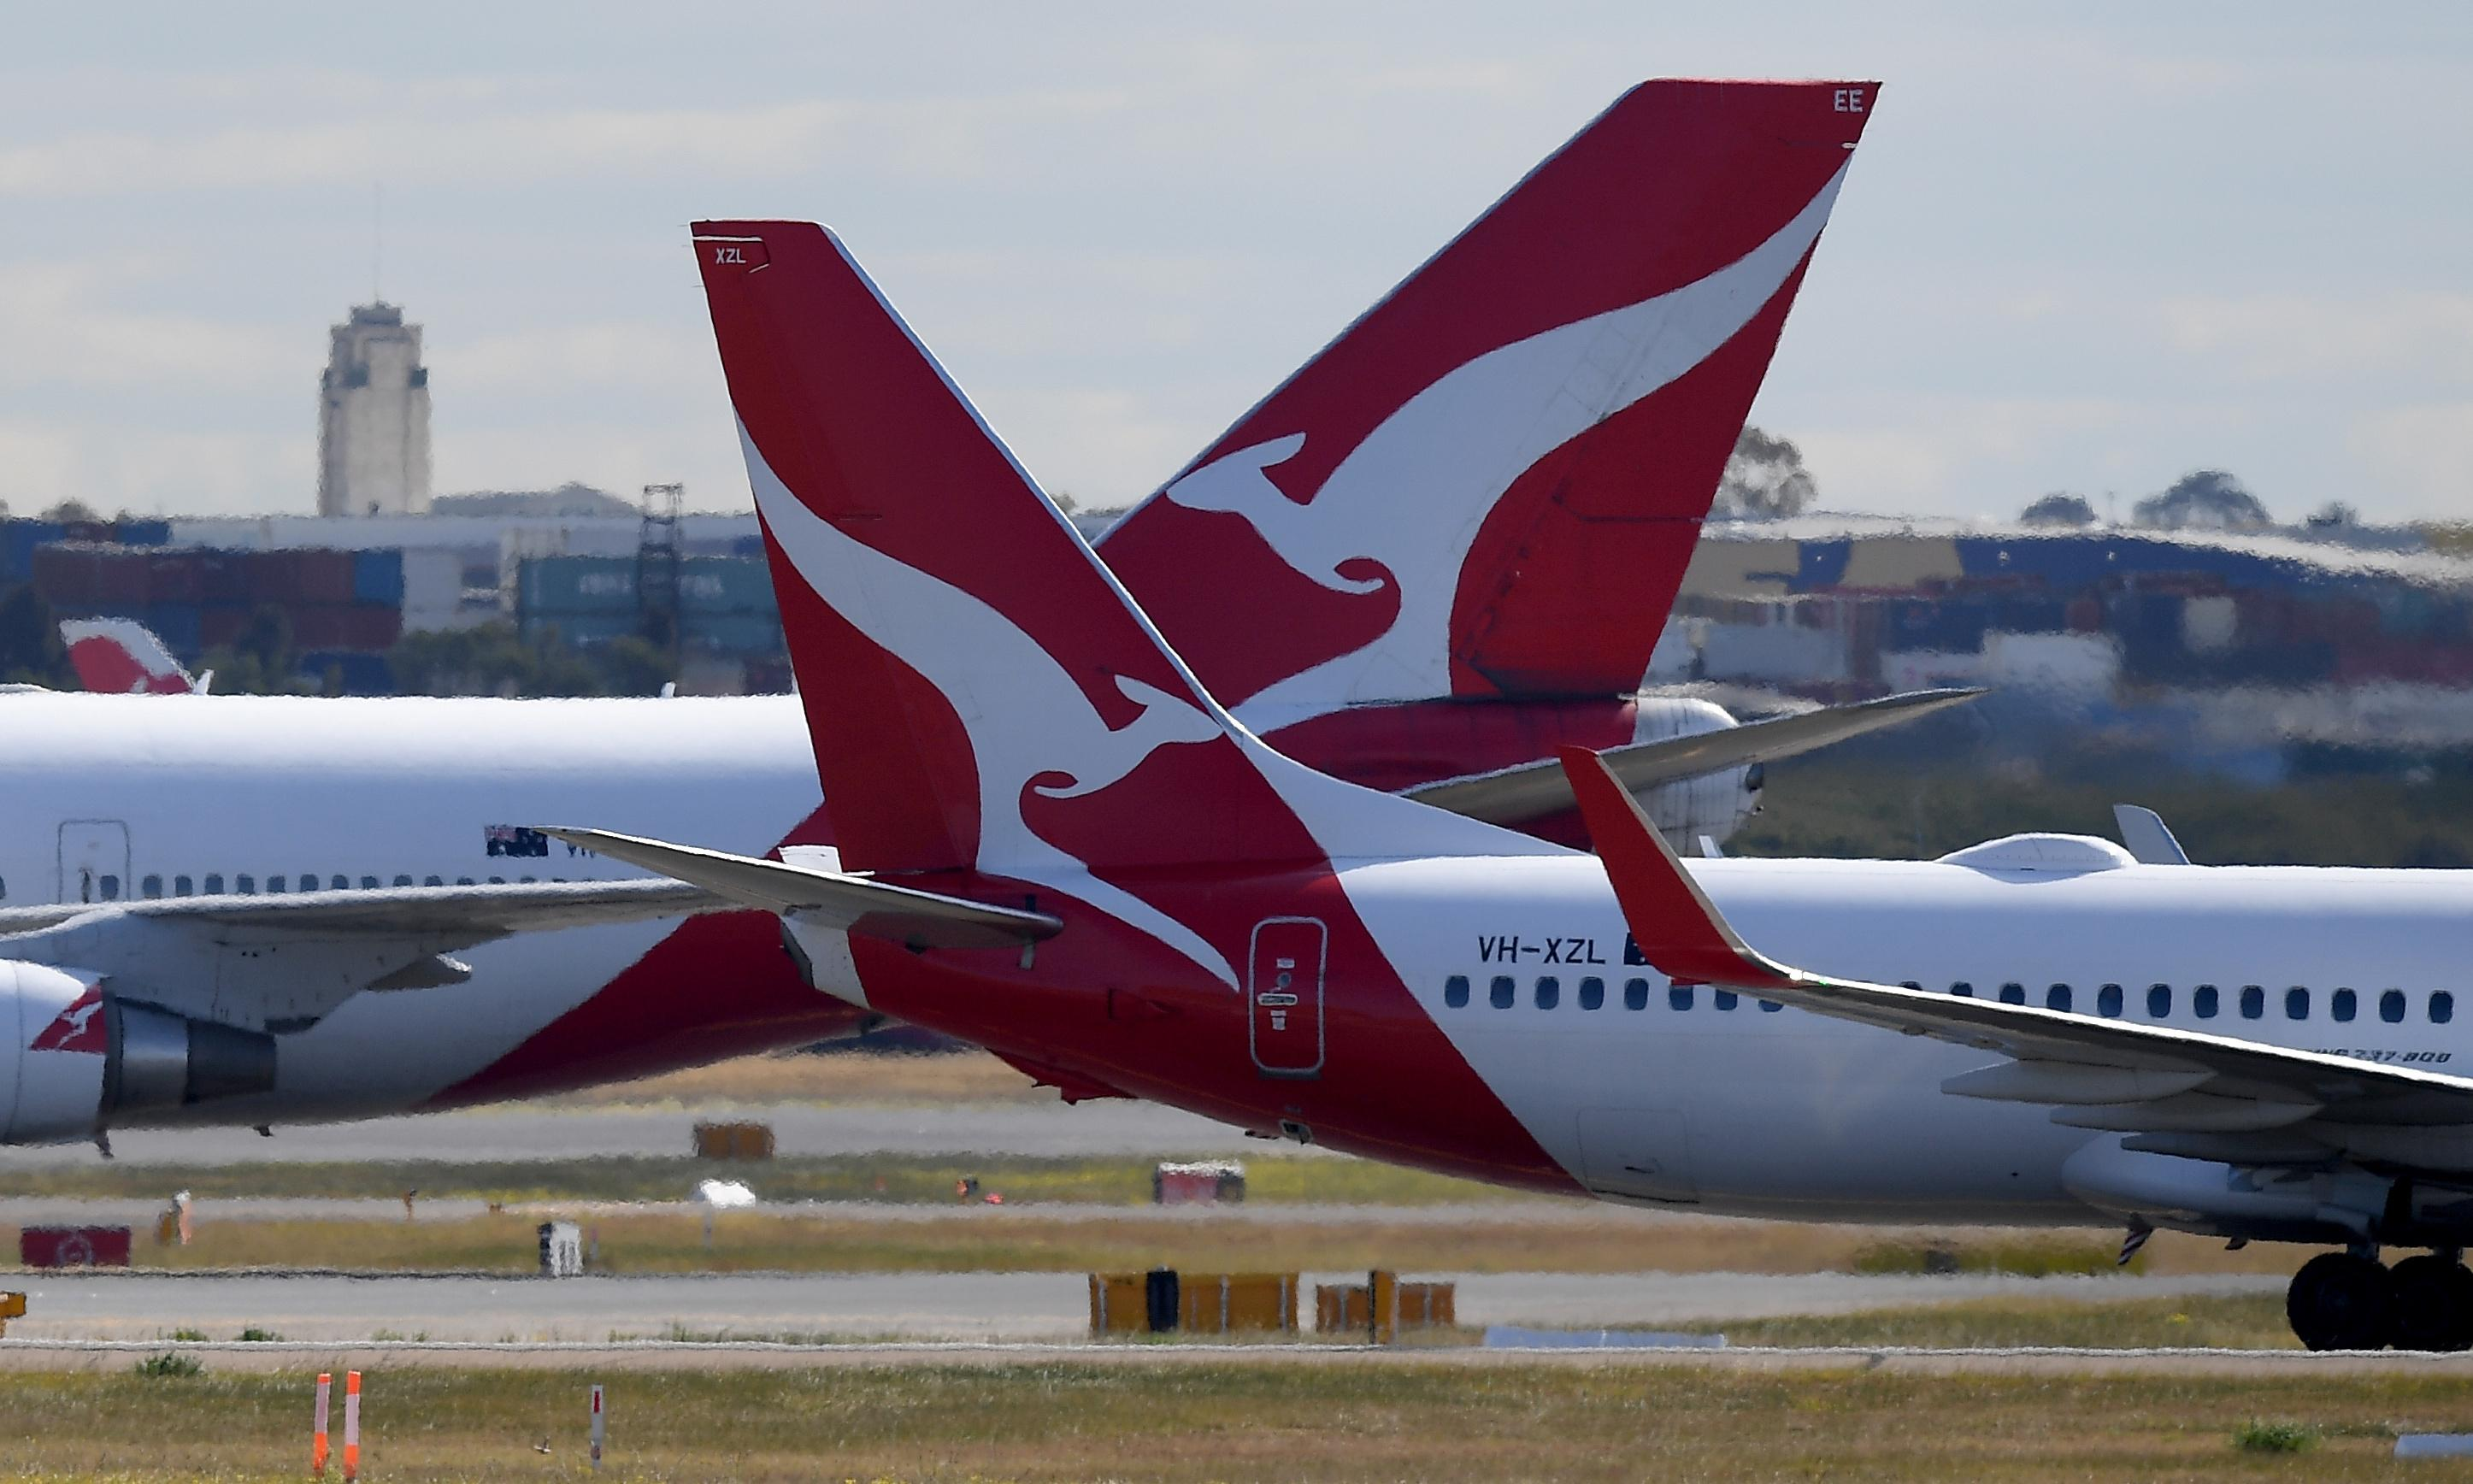 Qantas frequent flyer changes reviewed: more miles for upgrades, but more seats to buy